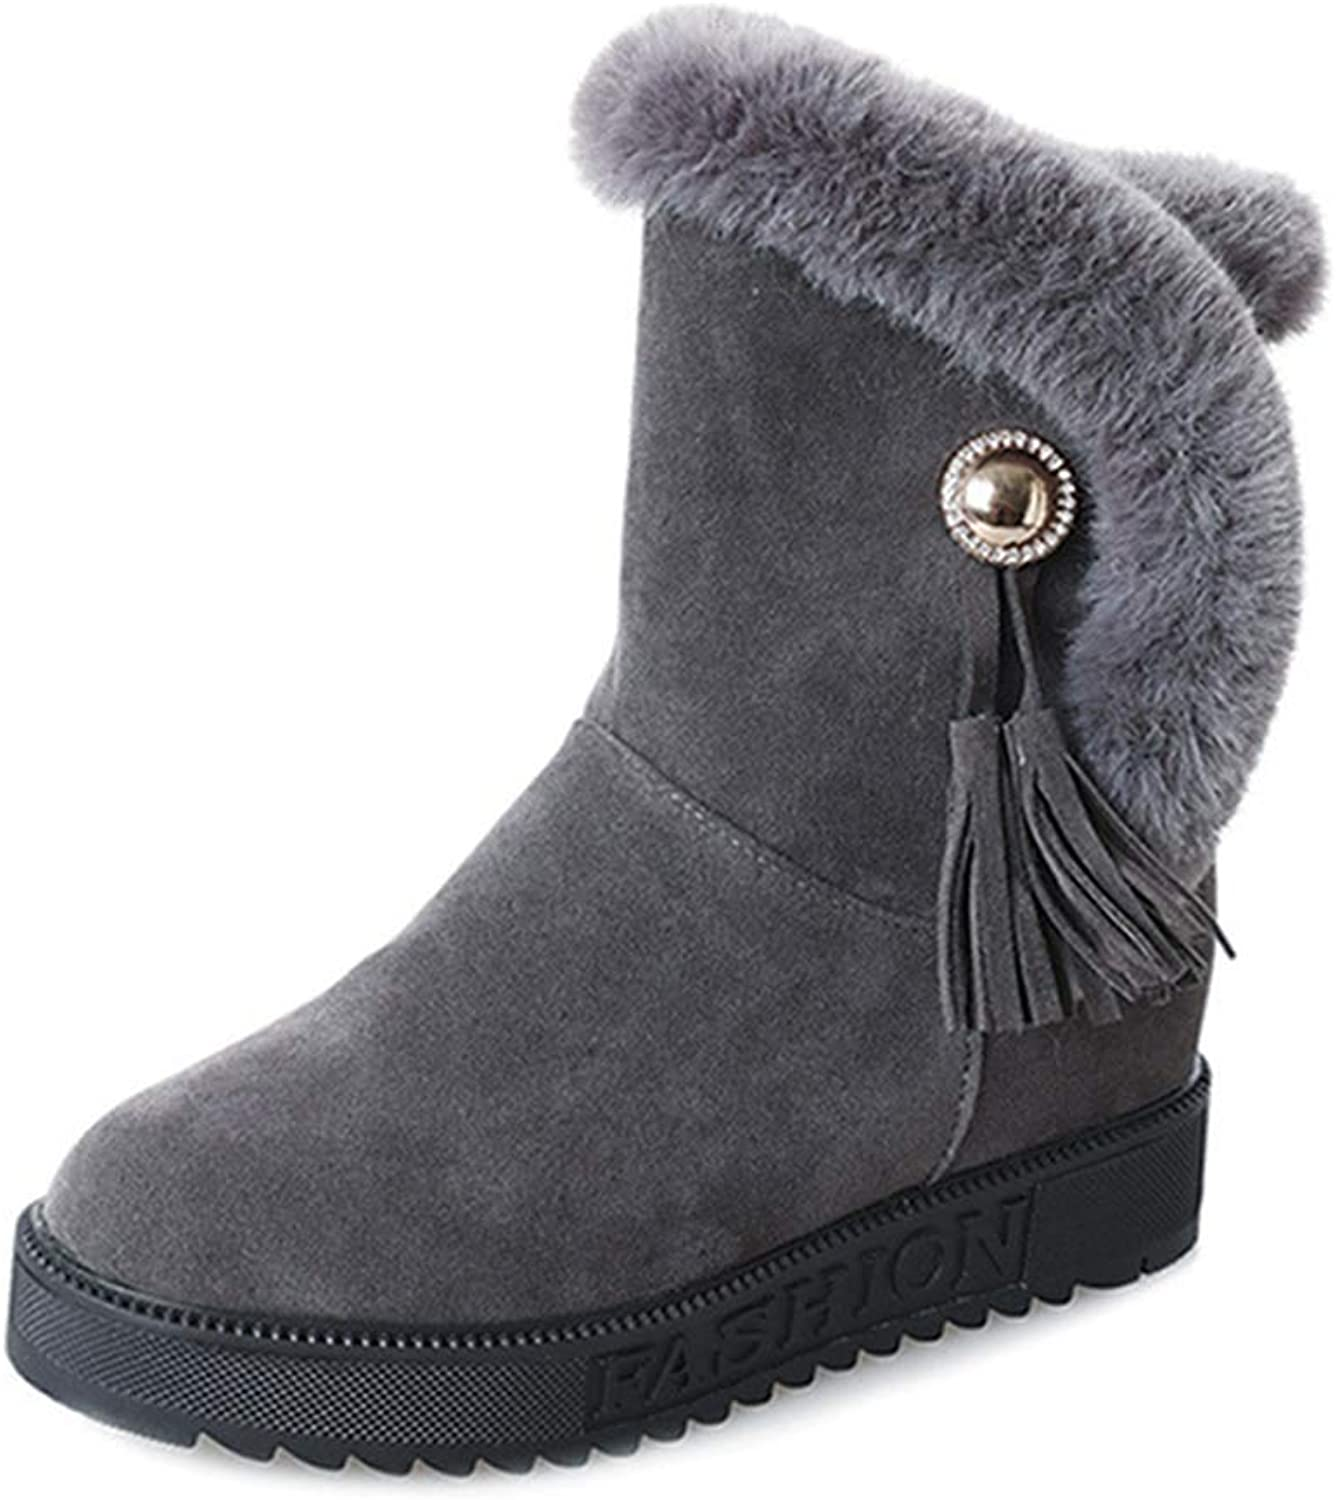 Womens Fringe Warm Mid-Calf Boots Fur Flat Round Toe Slip-on Winter Snow Ankle Booties